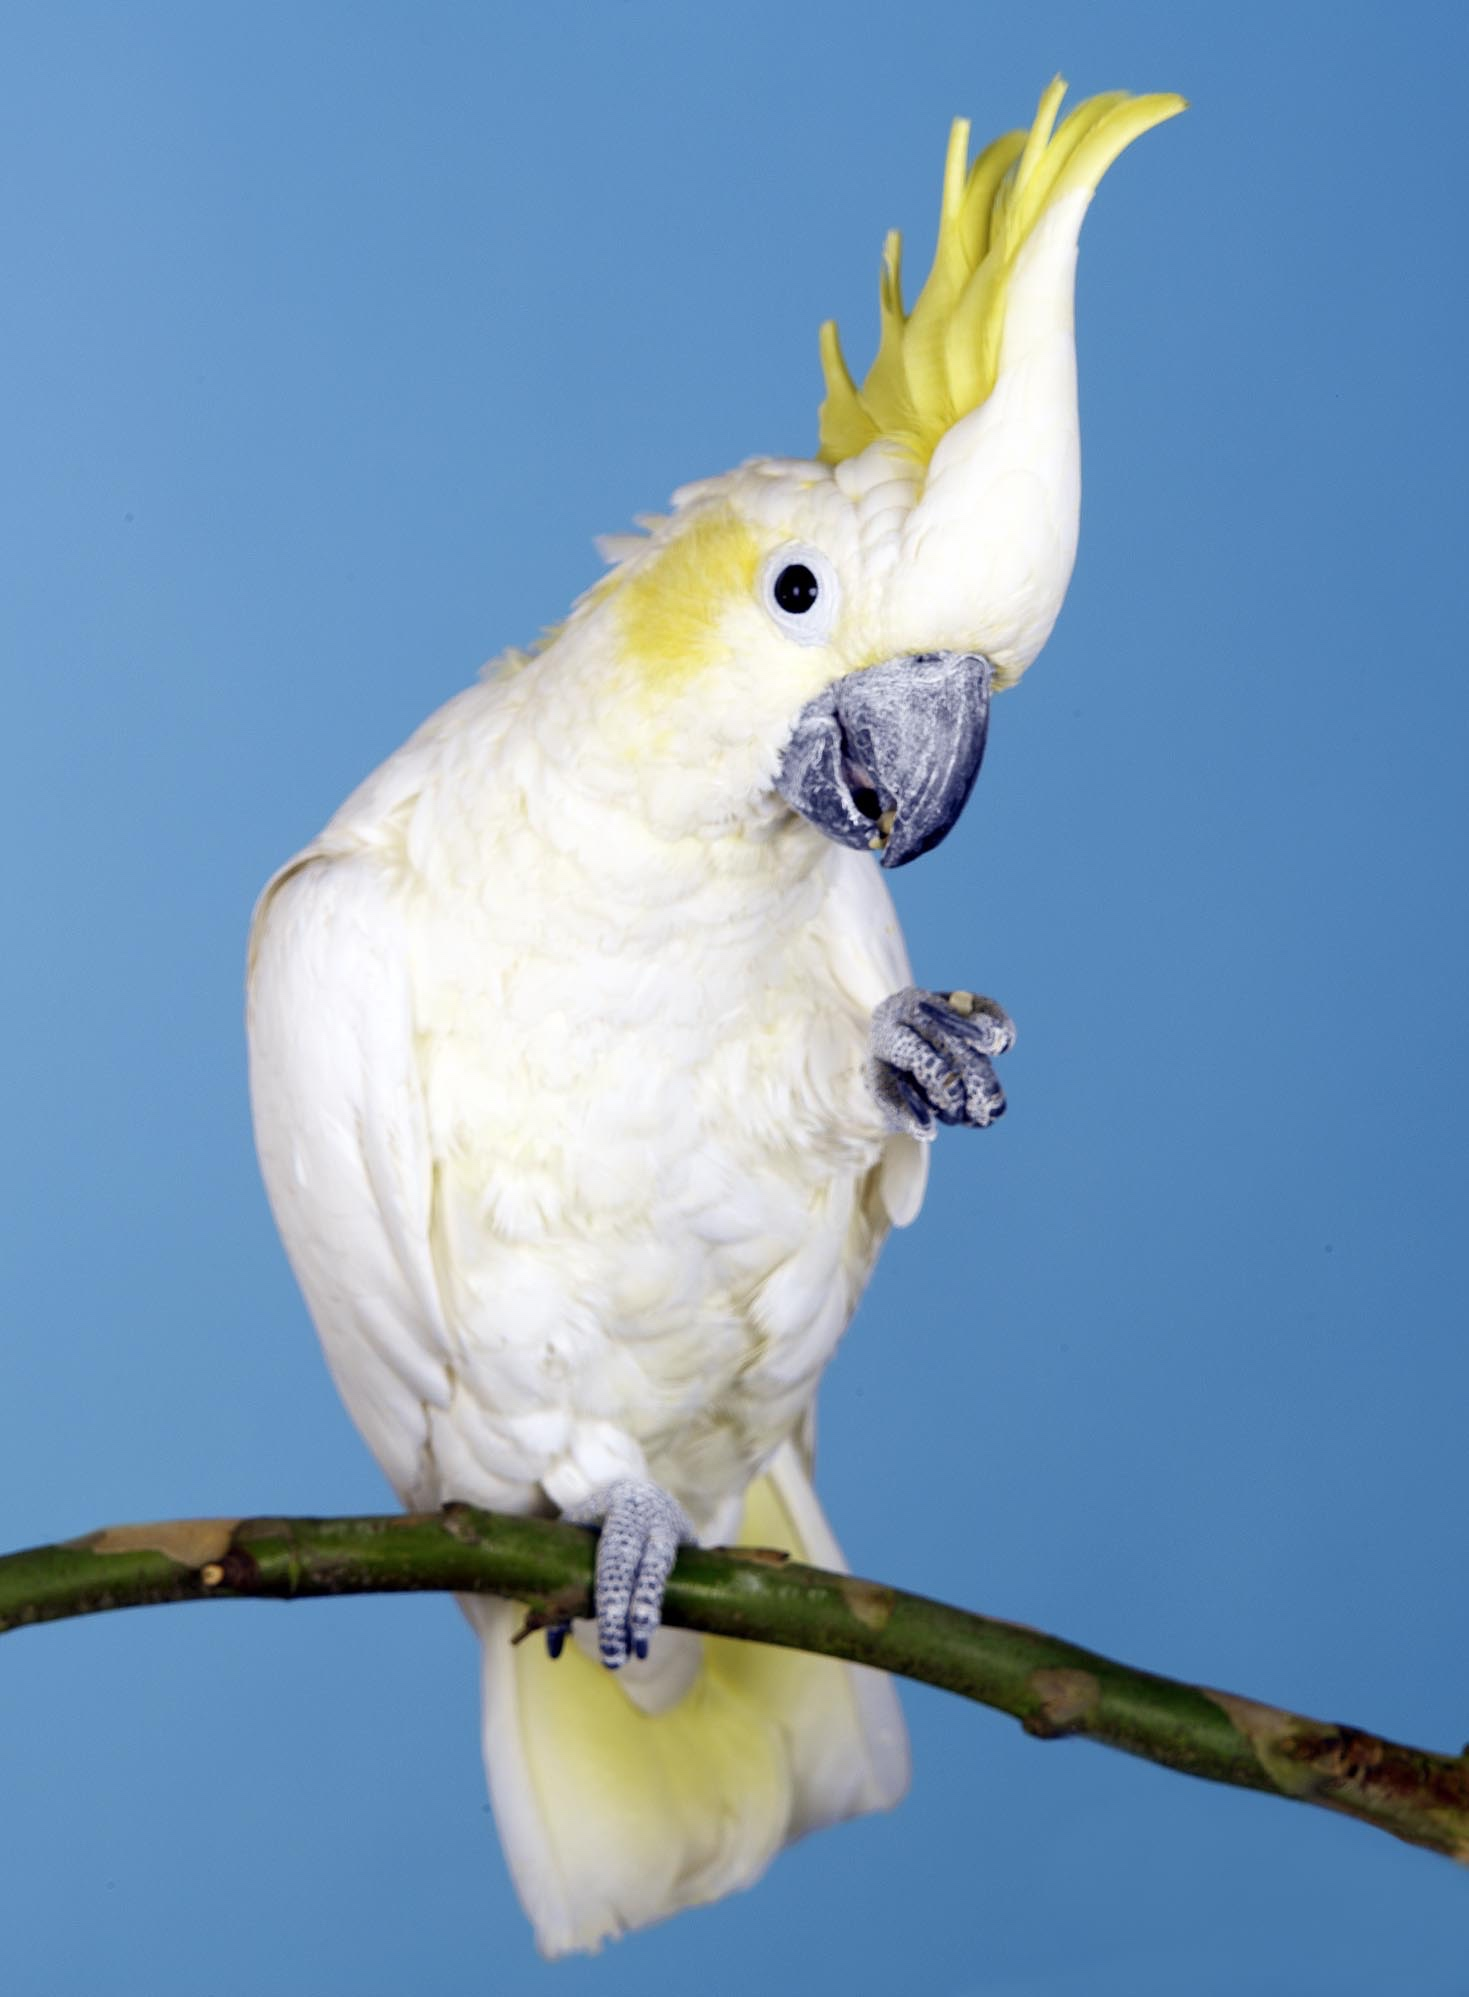 Sulphur crested cockatoo. Photo: Animal Ark